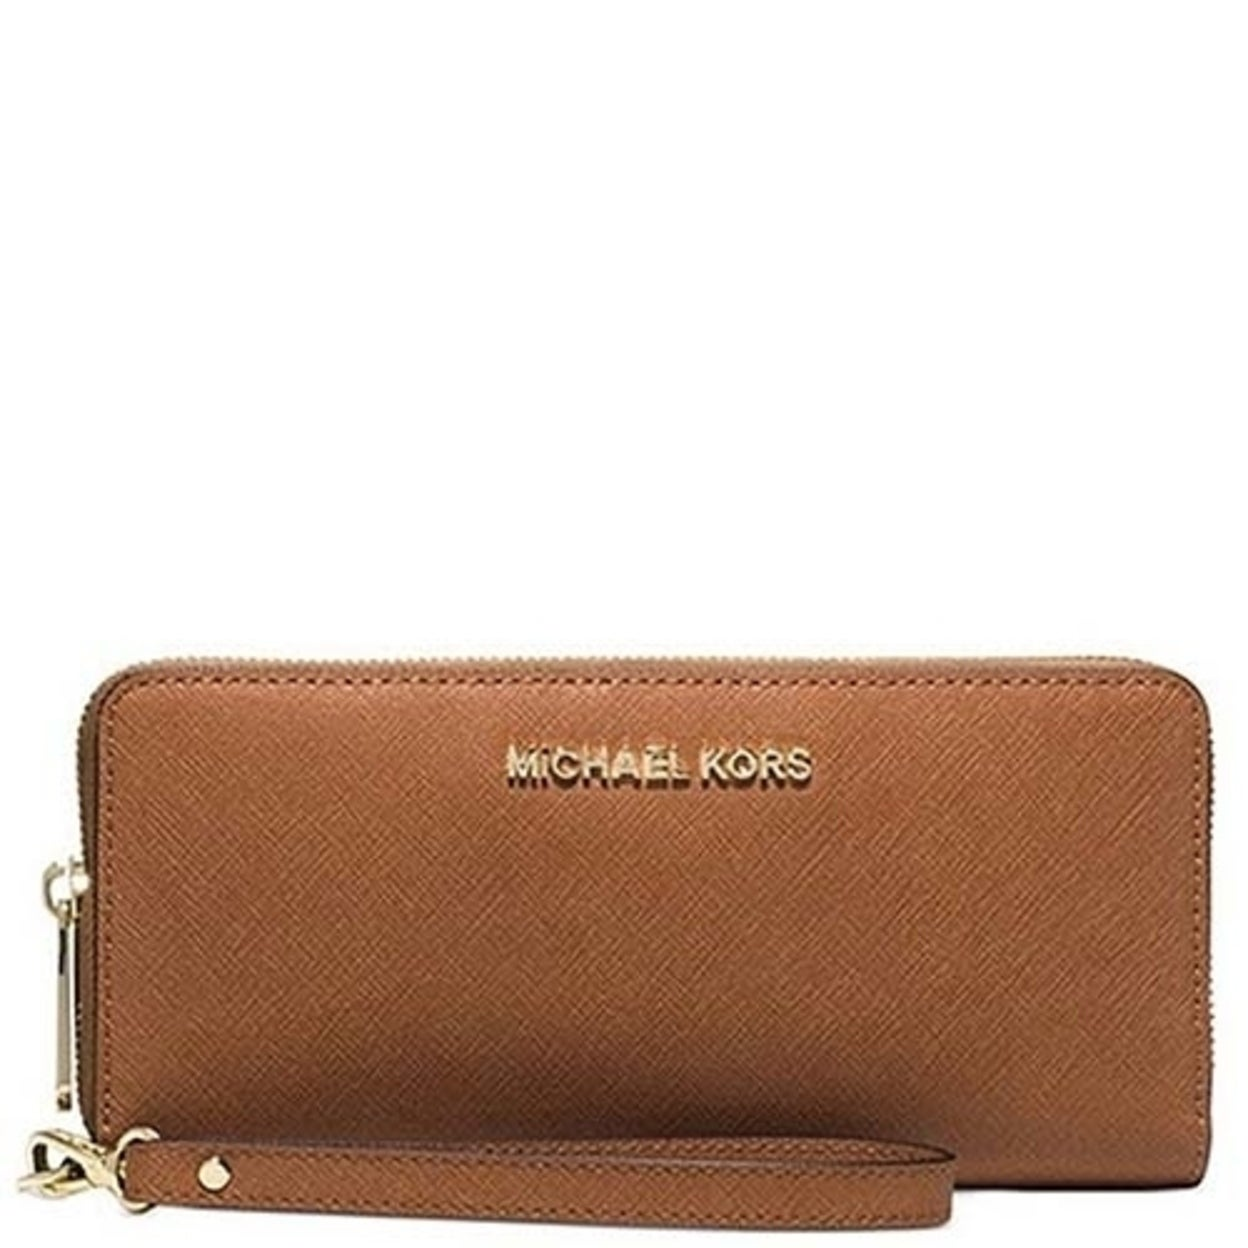 e18142c31f83 Shop Michael Michael Kors Jet Set Travel Travel Continental Saffiano  Leather 18K - Free Shipping Today - Overstock - 23119354